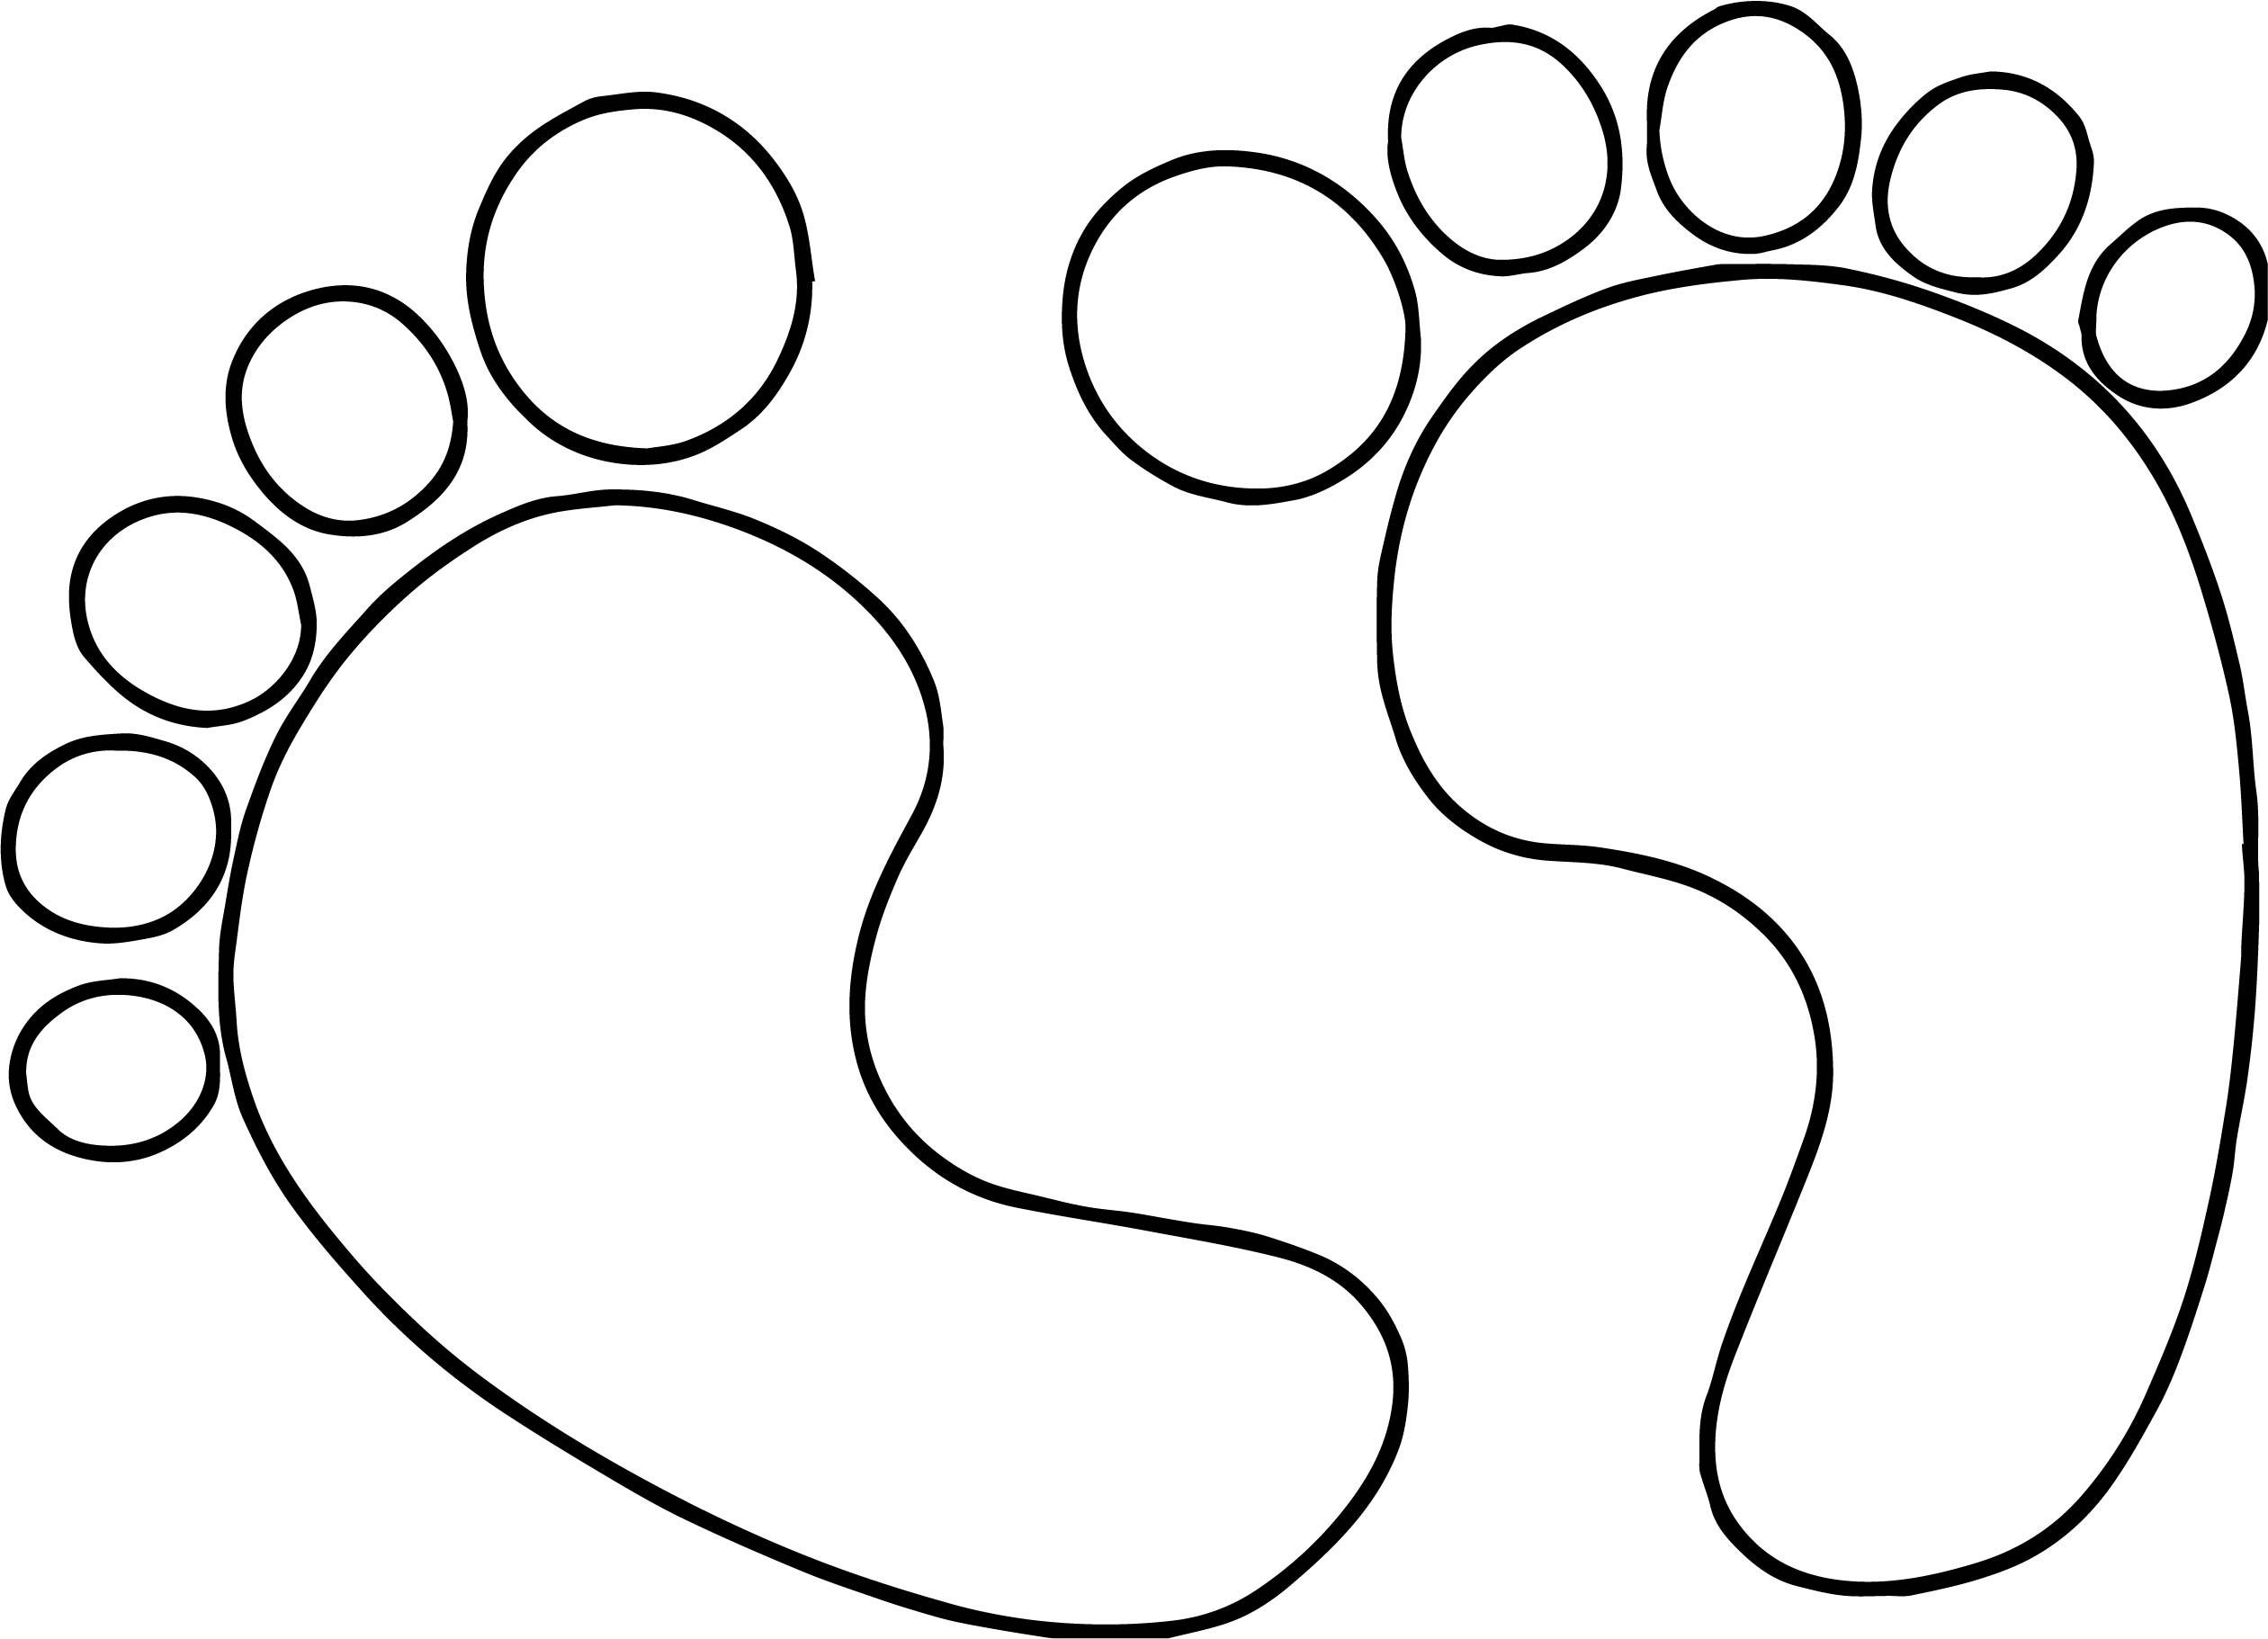 Footprint Coloring Page At Getdrawings